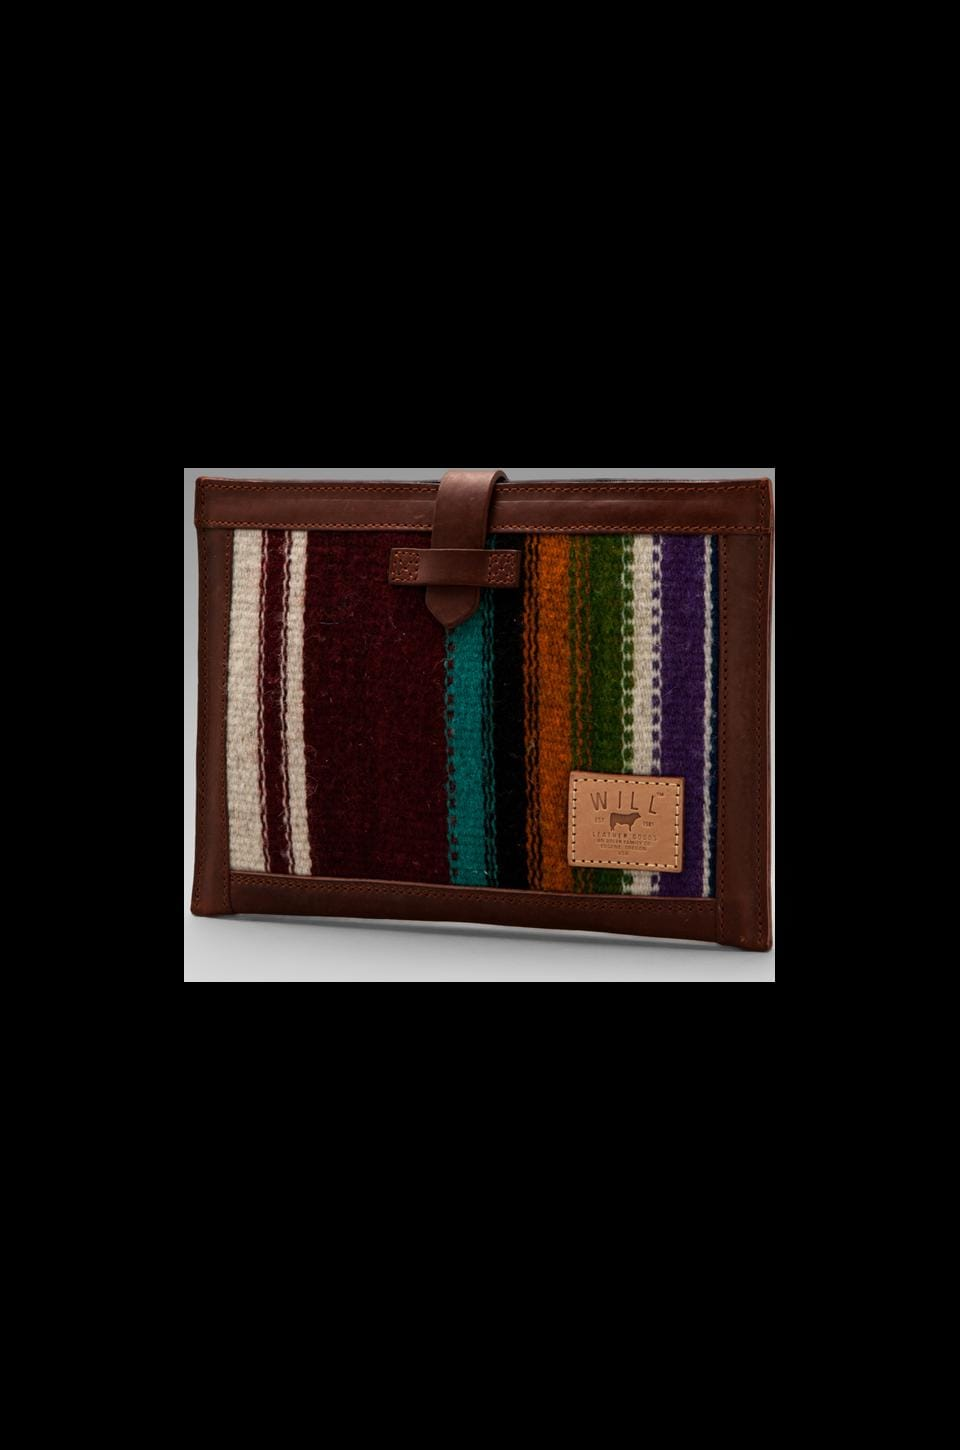 WILL Leather Goods Oaxacan iPad 2 Sleeve in Cognac